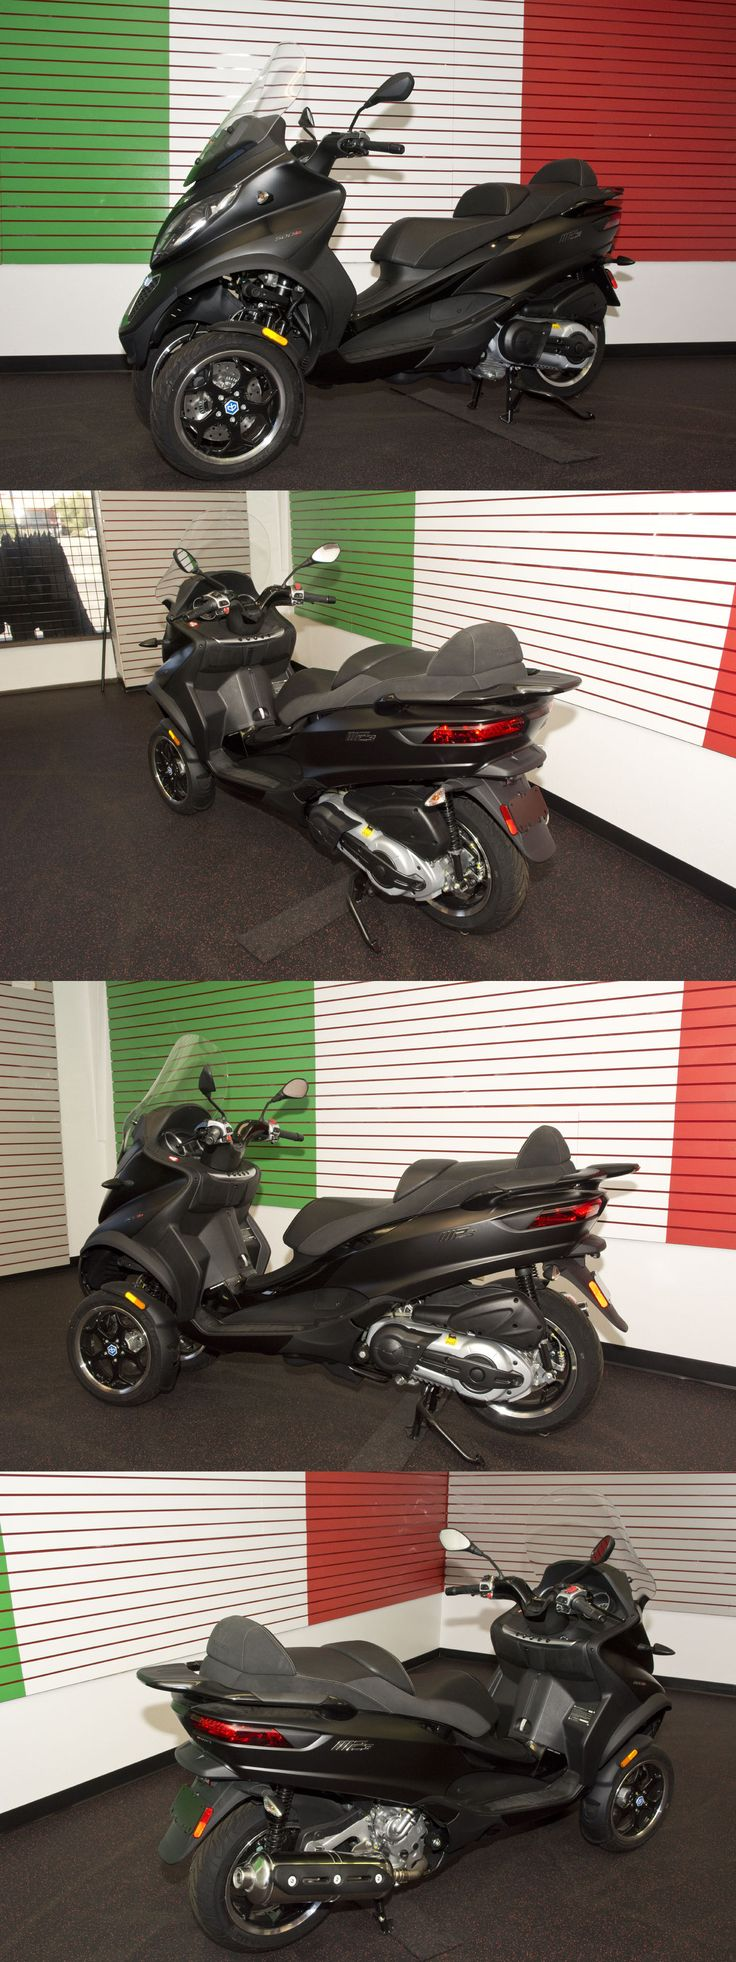 motorcycles And scooters: New! Piaggio Mp3 500 Sport Black With Full Factory Dealer Warranty -> BUY IT NOW ONLY: $7560 on eBay!